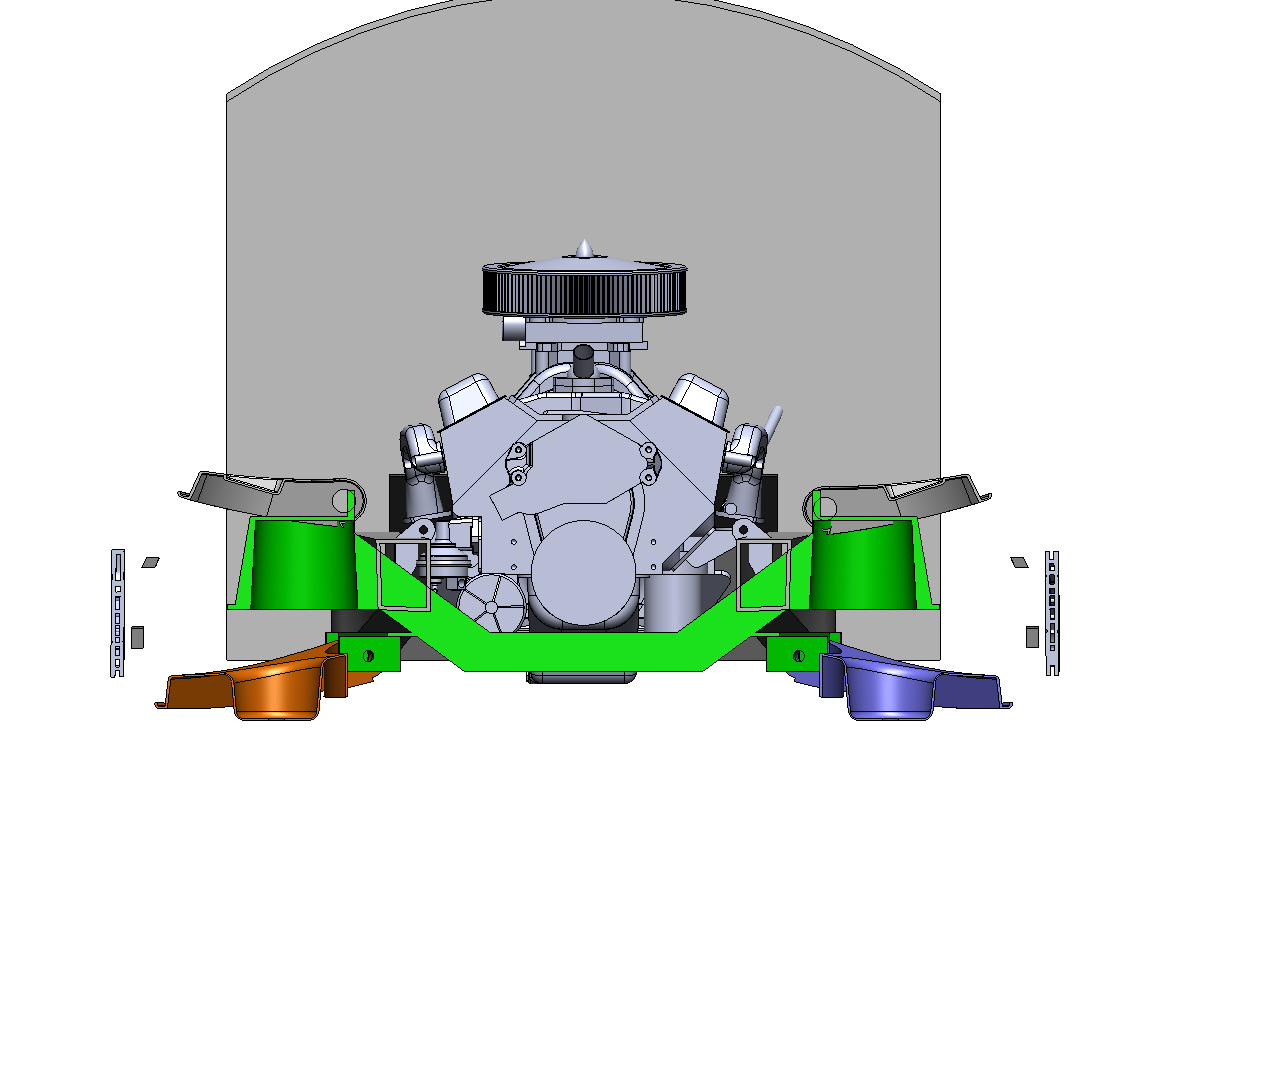 Click image for larger version  Name:cross section 95 cross in 37 frame, v0.27.JPG Views:157 Size:240.6 KB ID:78545